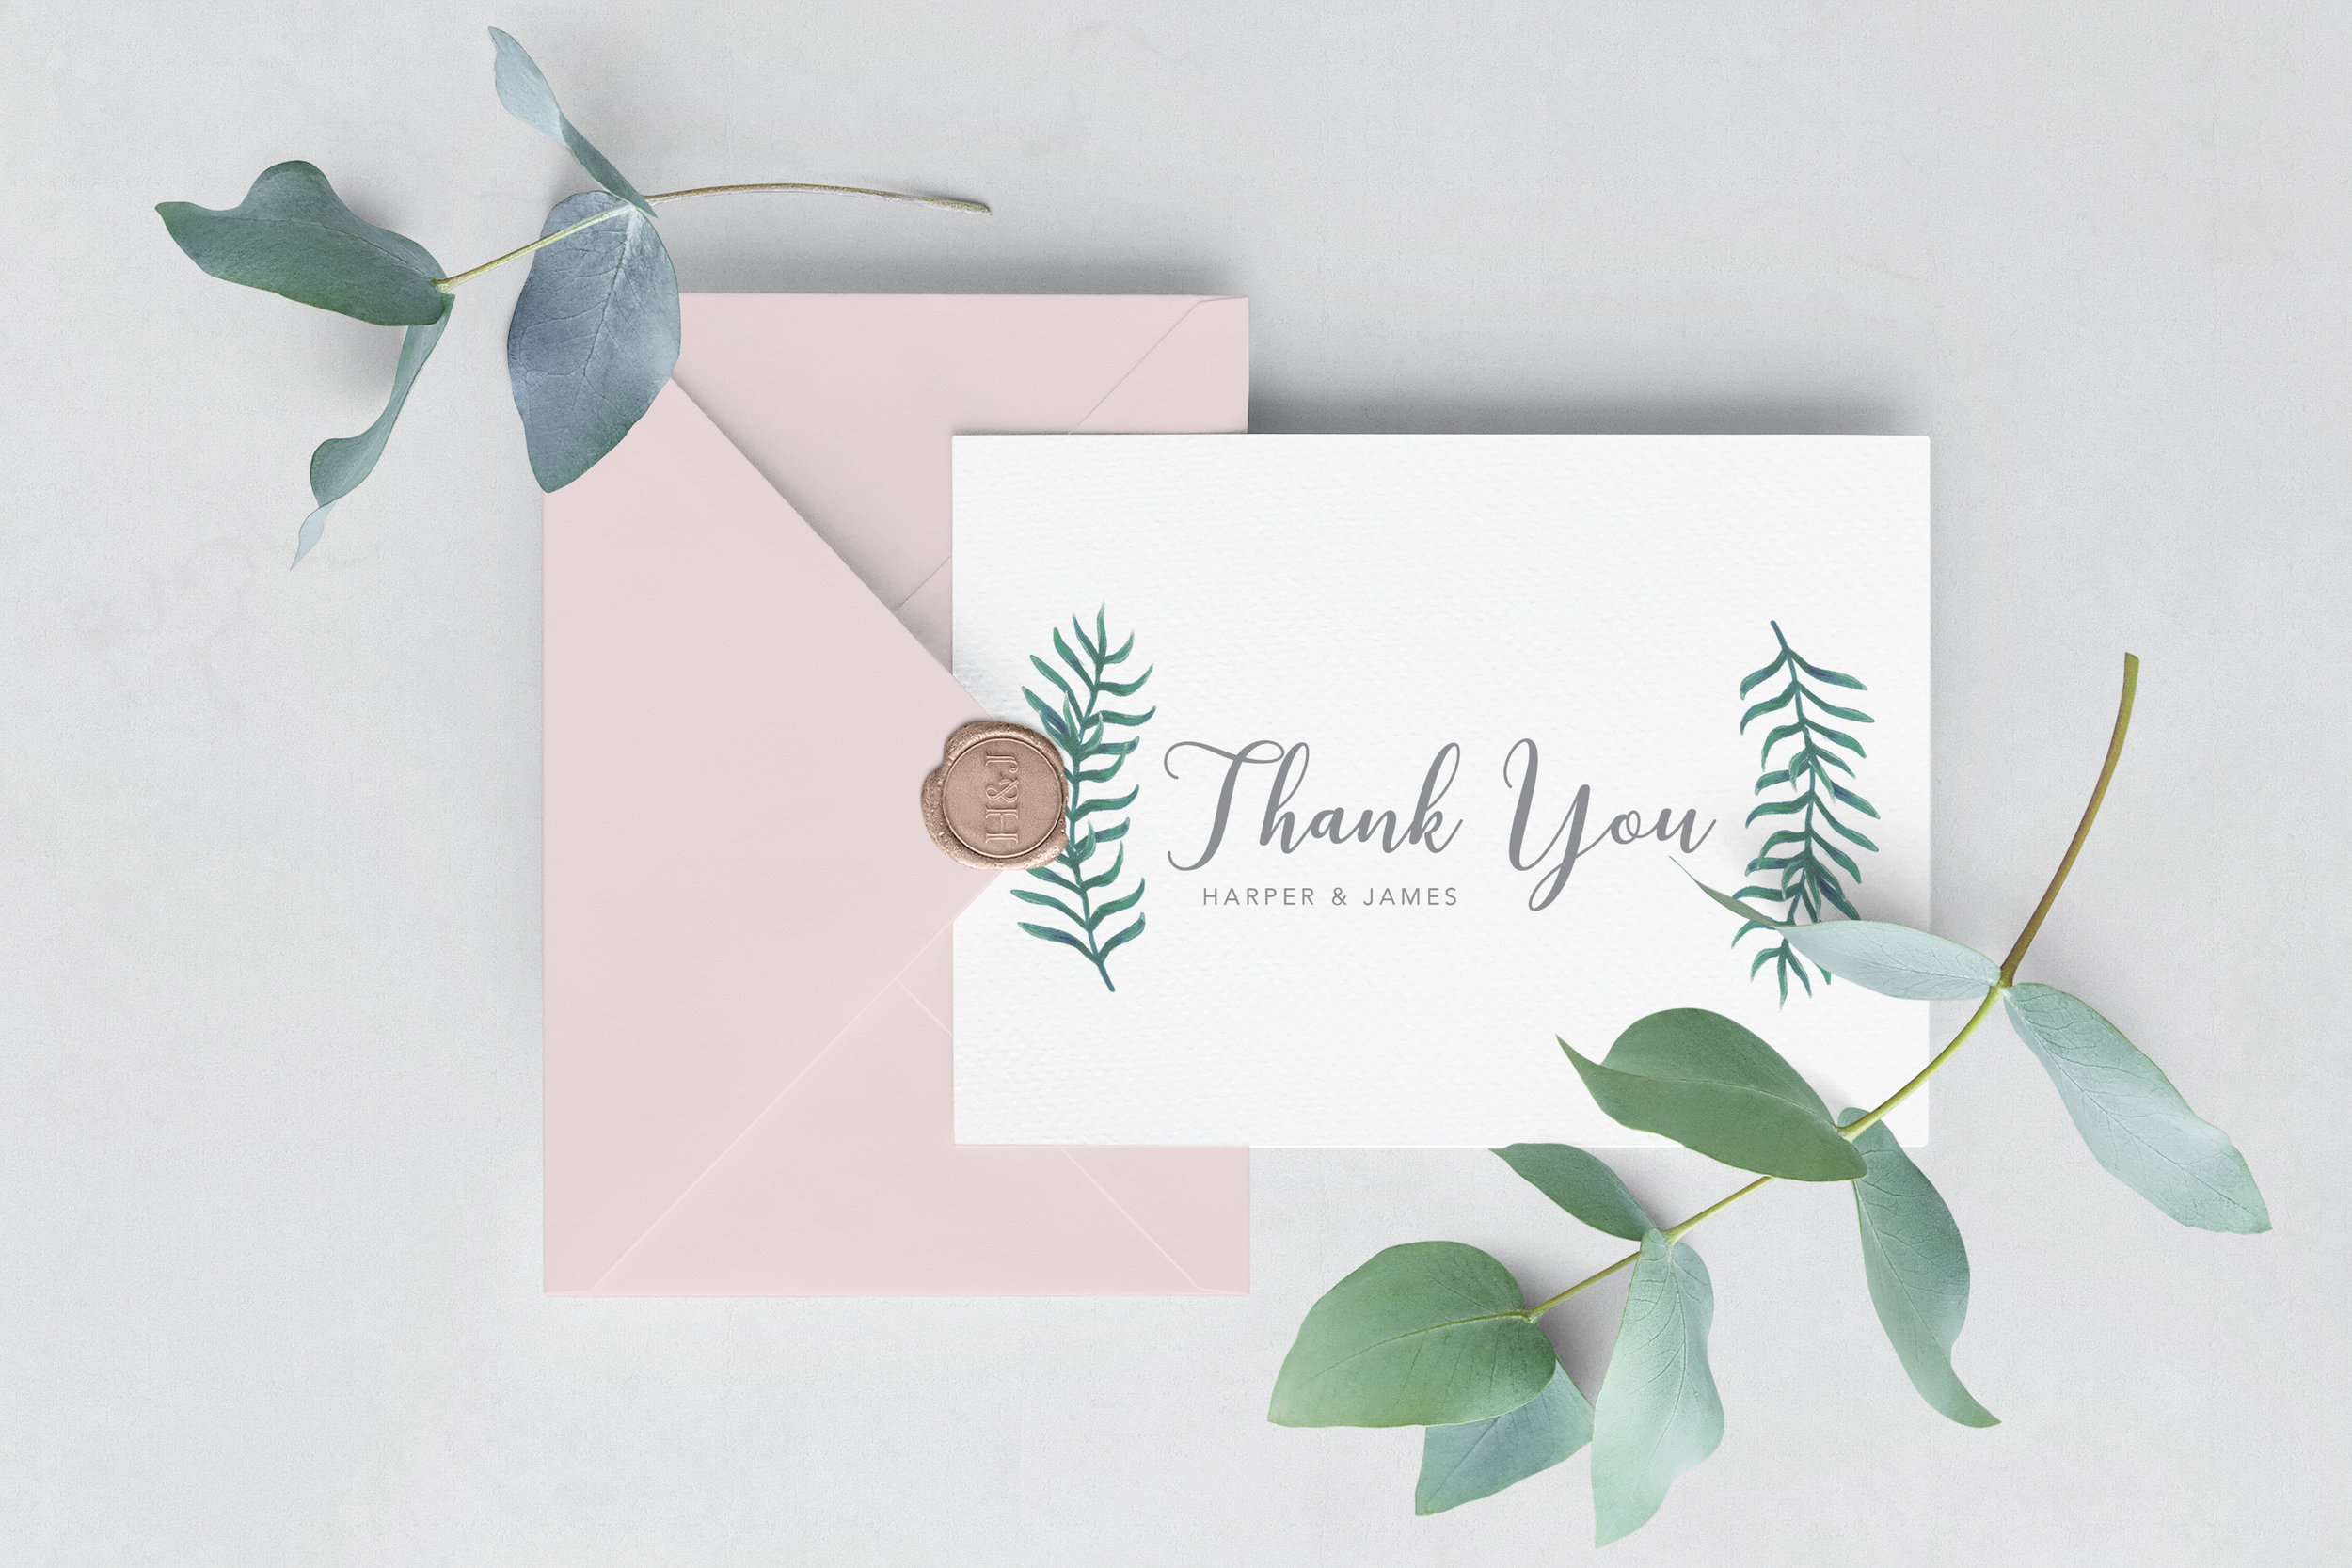 Invitation Card and Envelope 3.jpg